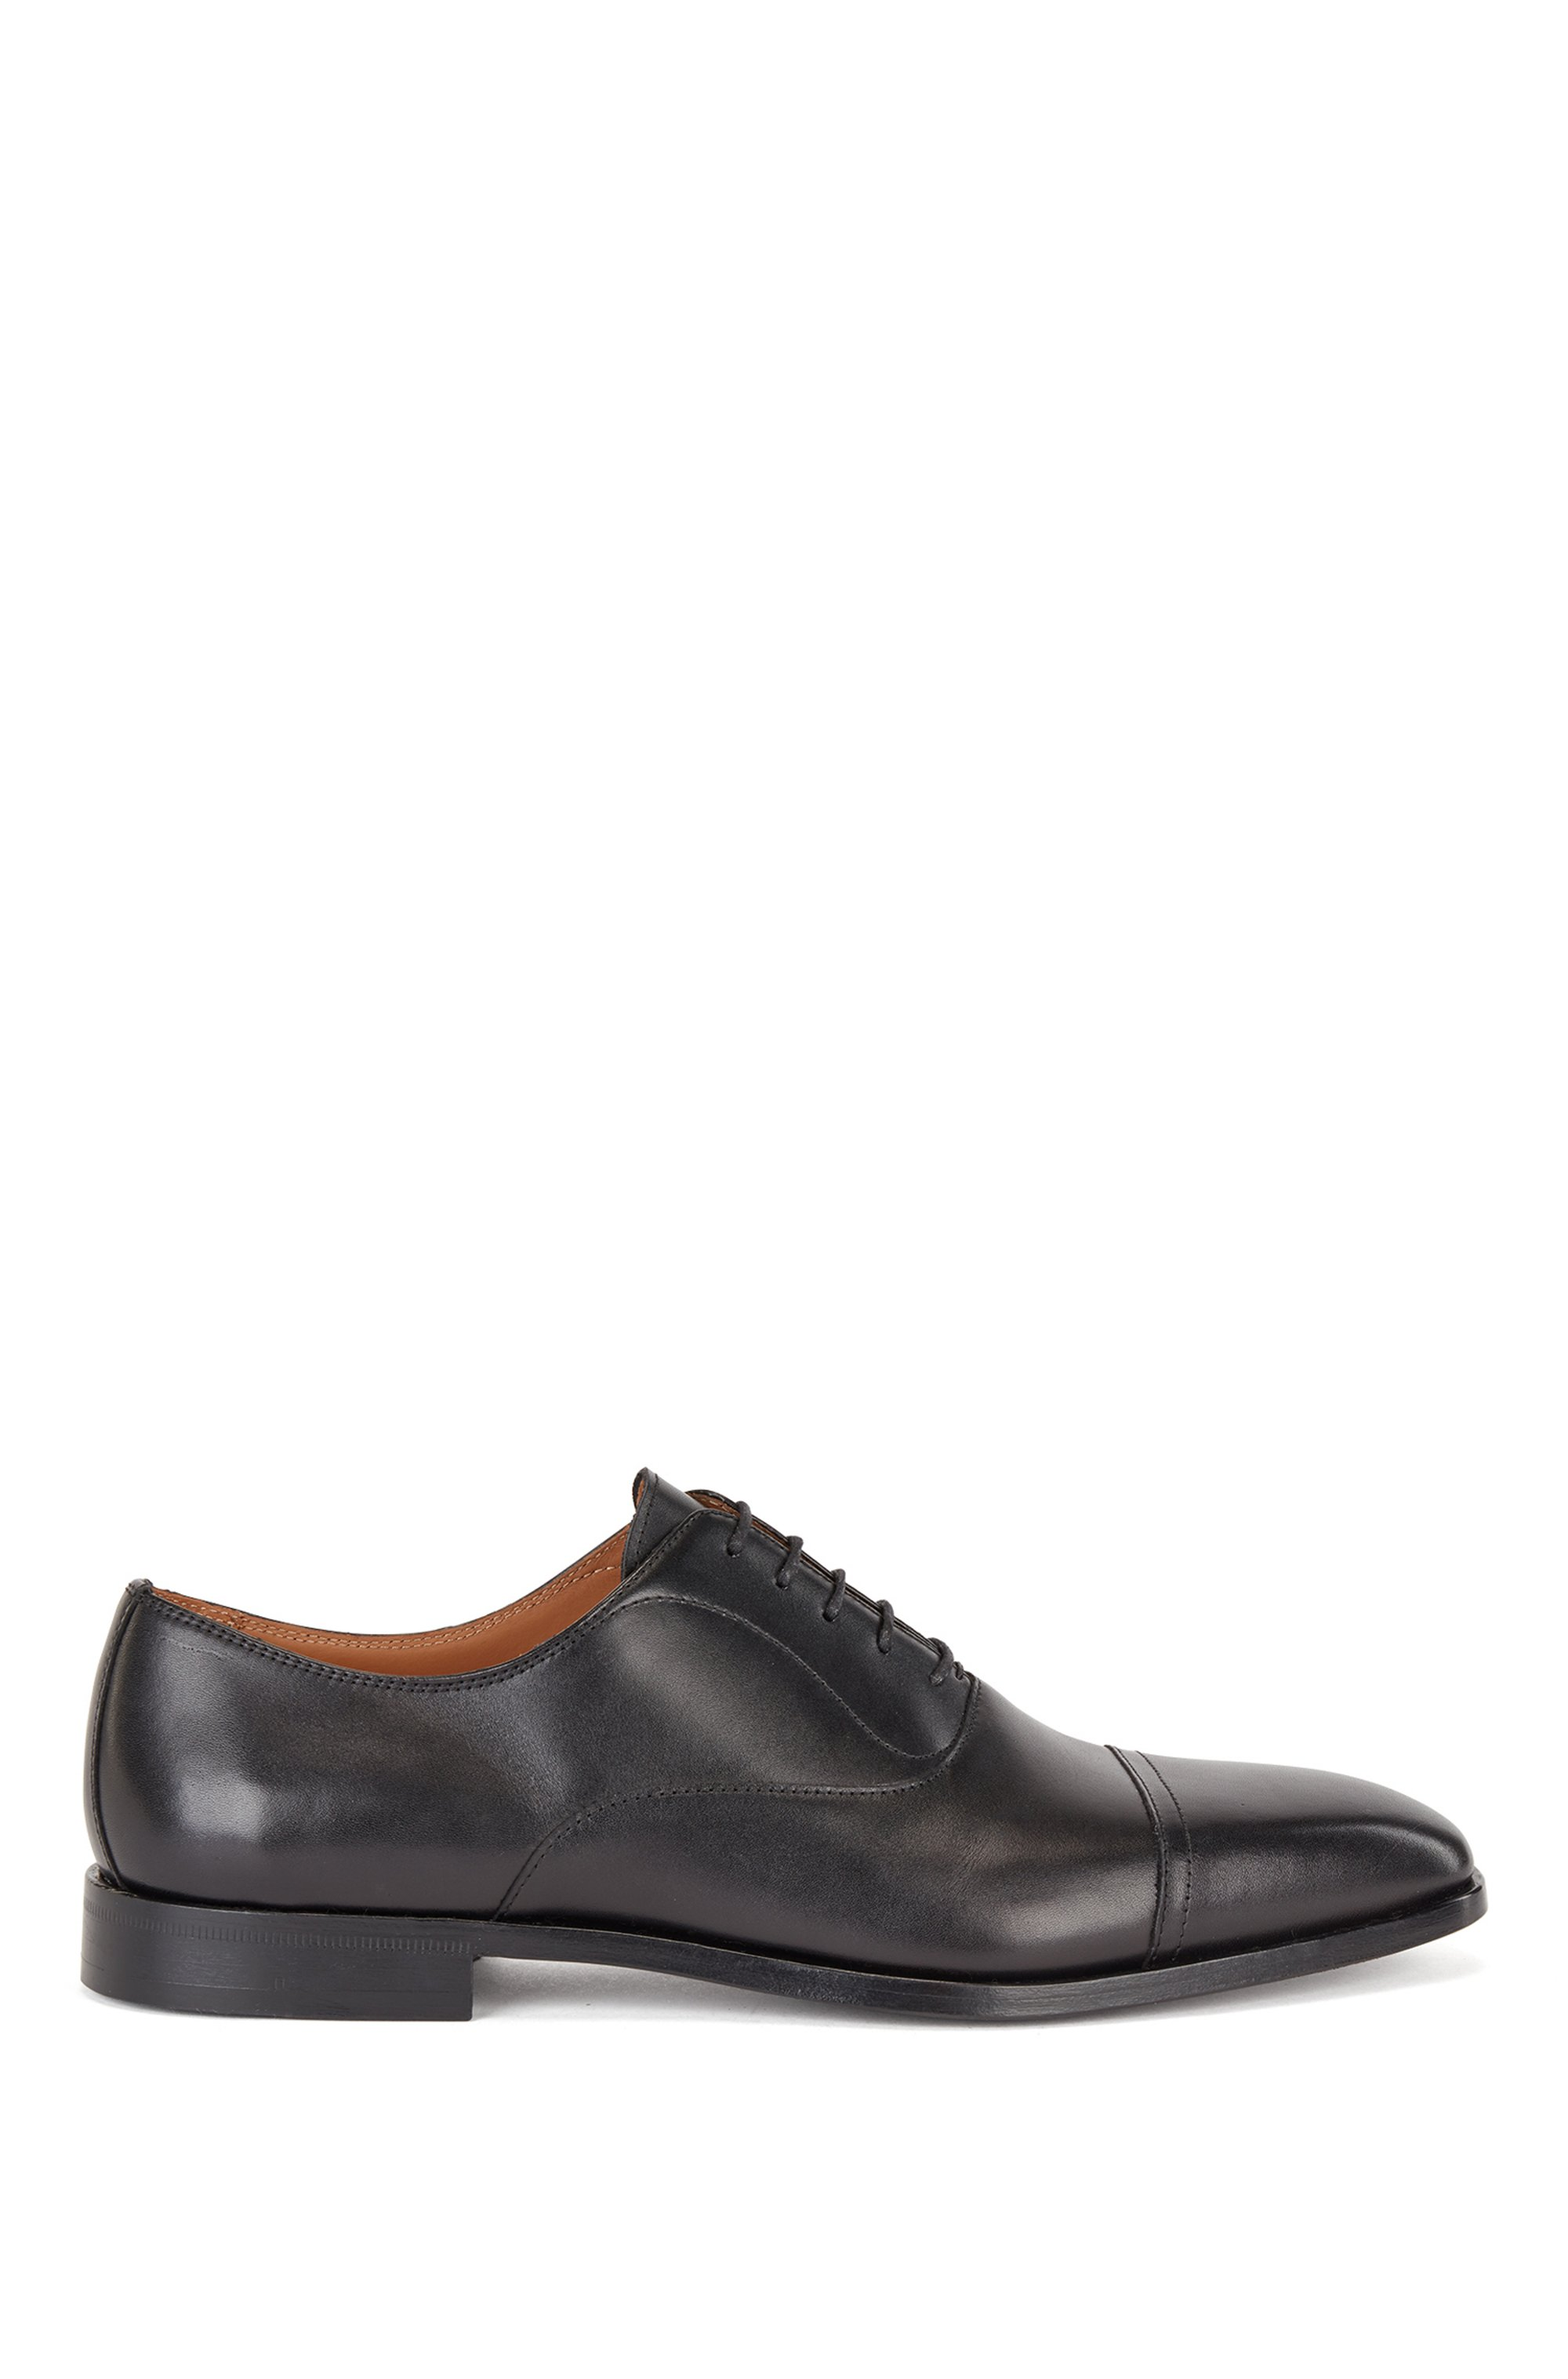 Cap toe Oxford shoes in burnished leather, Black